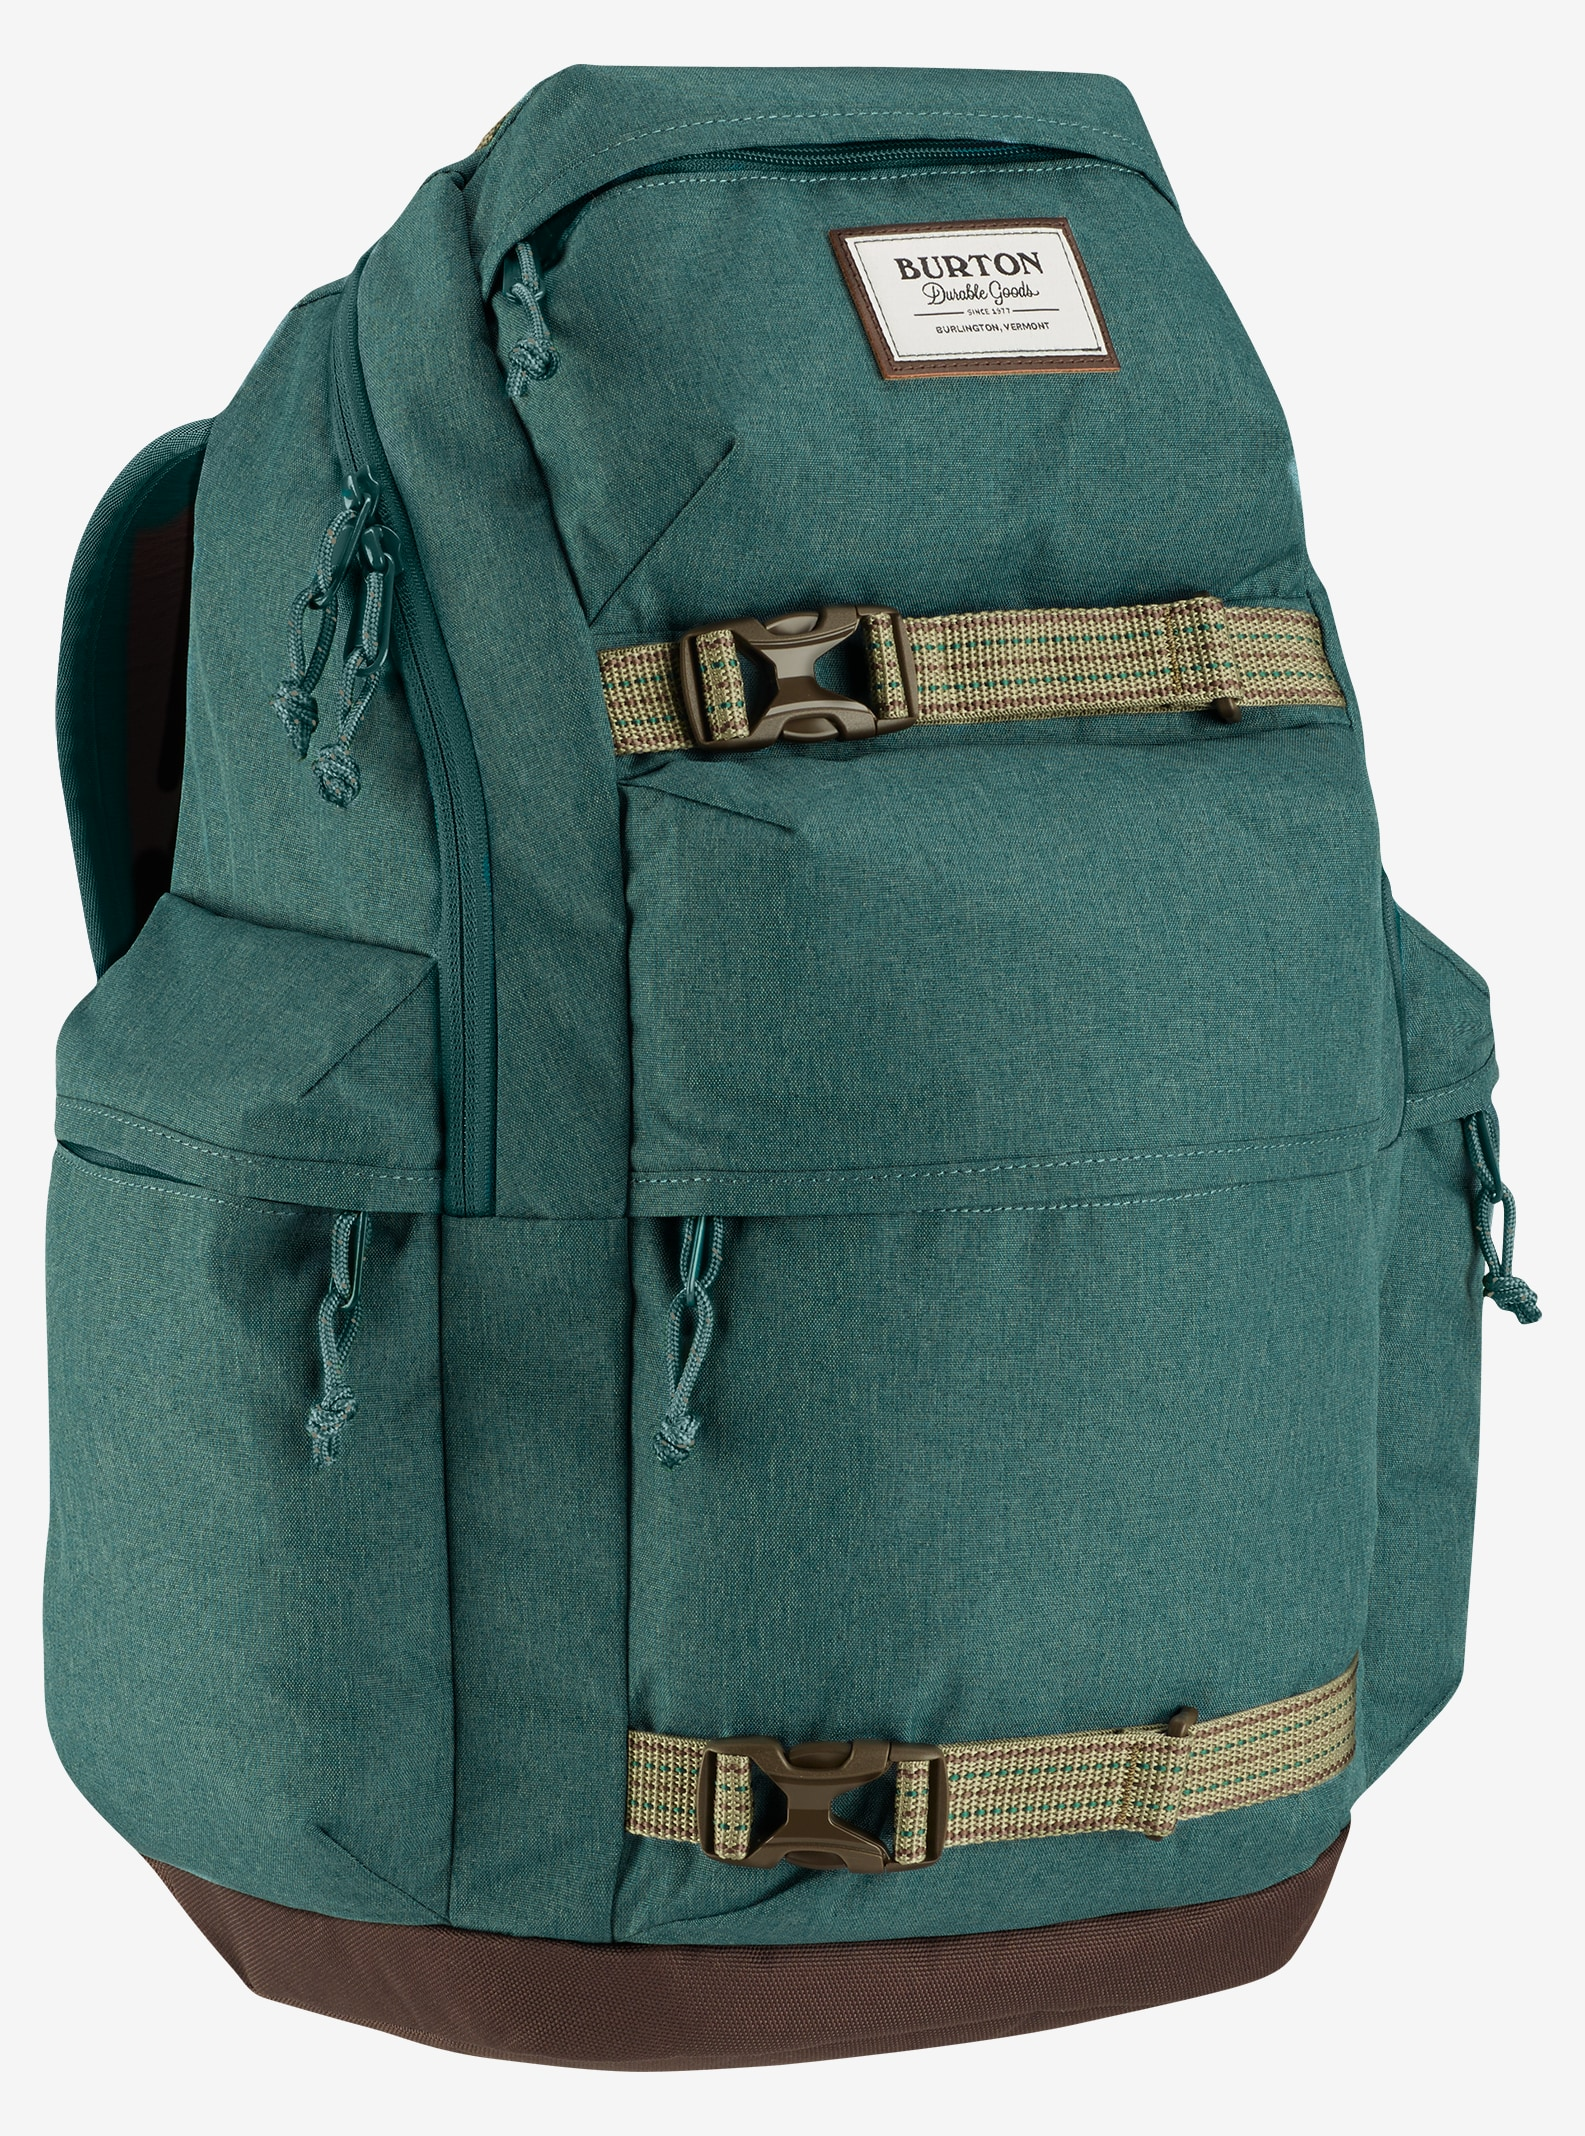 Burton Kilo Backpack shown in Jasper Heather